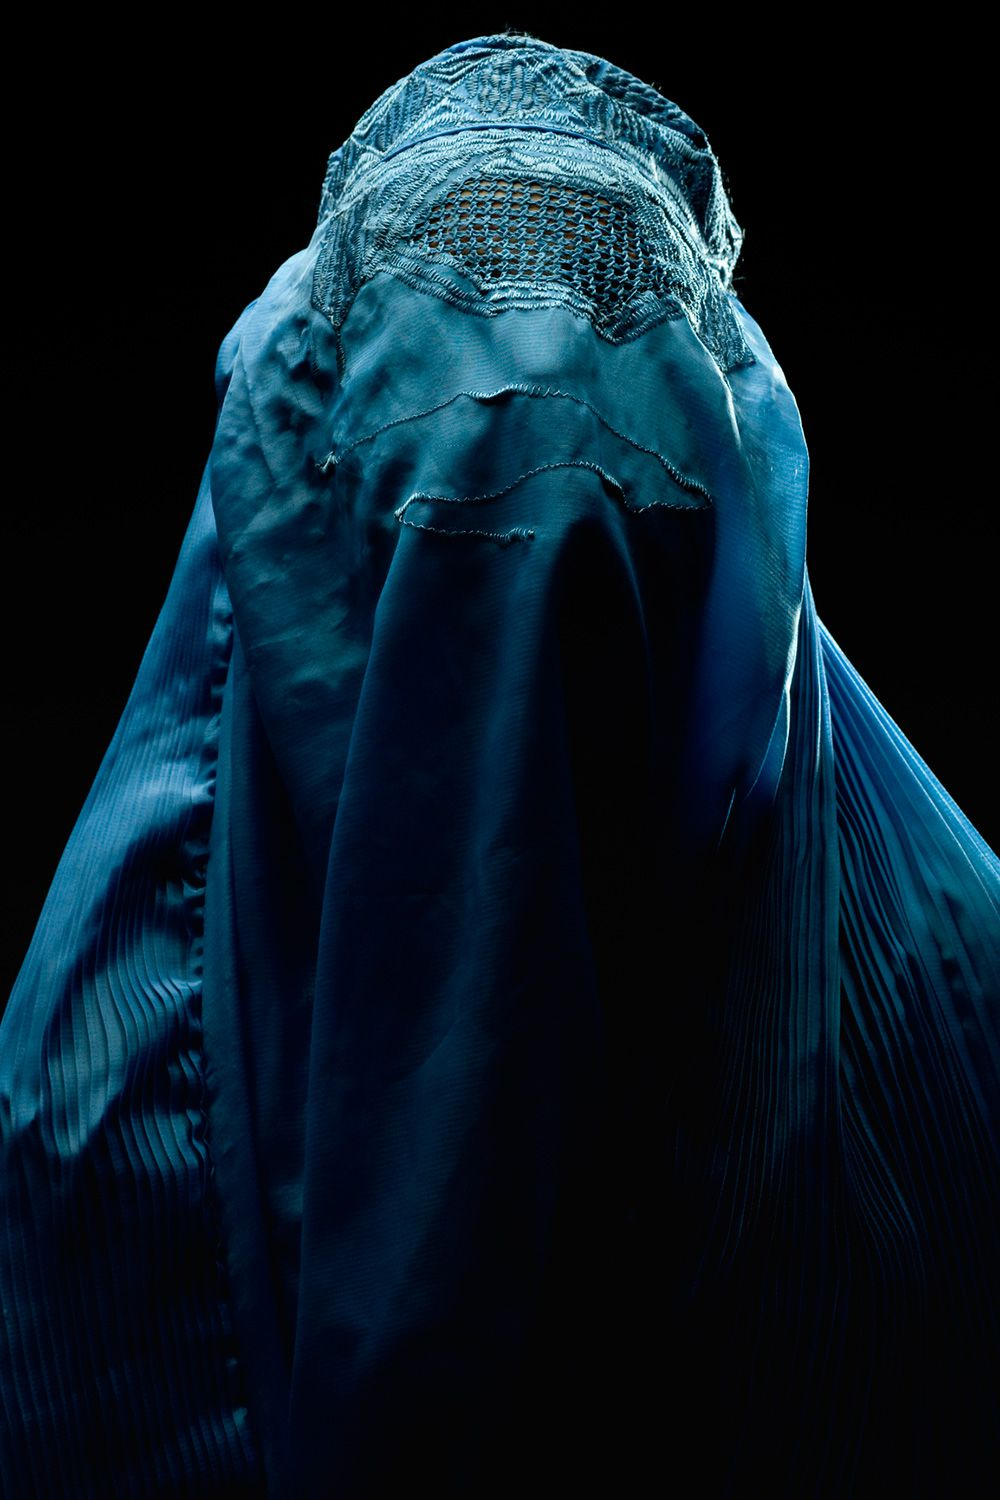 A woman wearing a blue burqa common in Afghanistan.